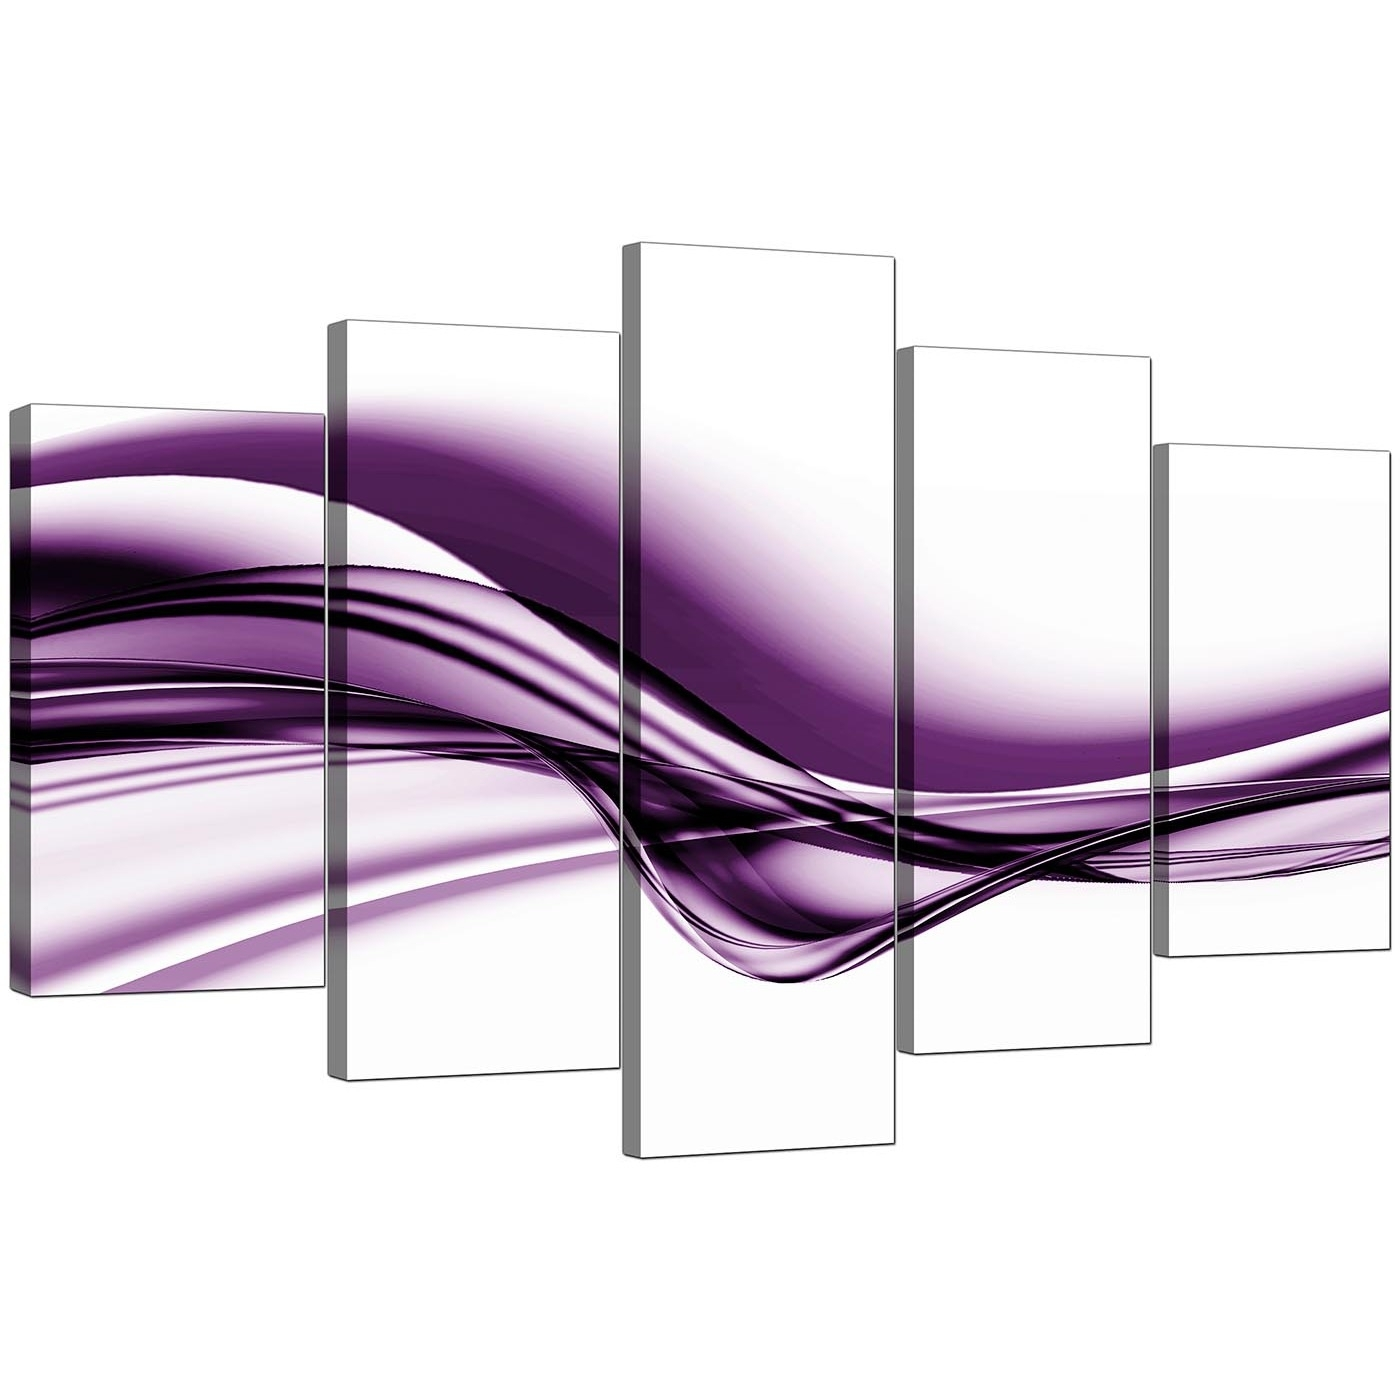 Extra Large Purple Abstract Canvas Prints – 5 Piece Intended For Most Popular Extra Large Abstract Wall Art (View 5 of 20)